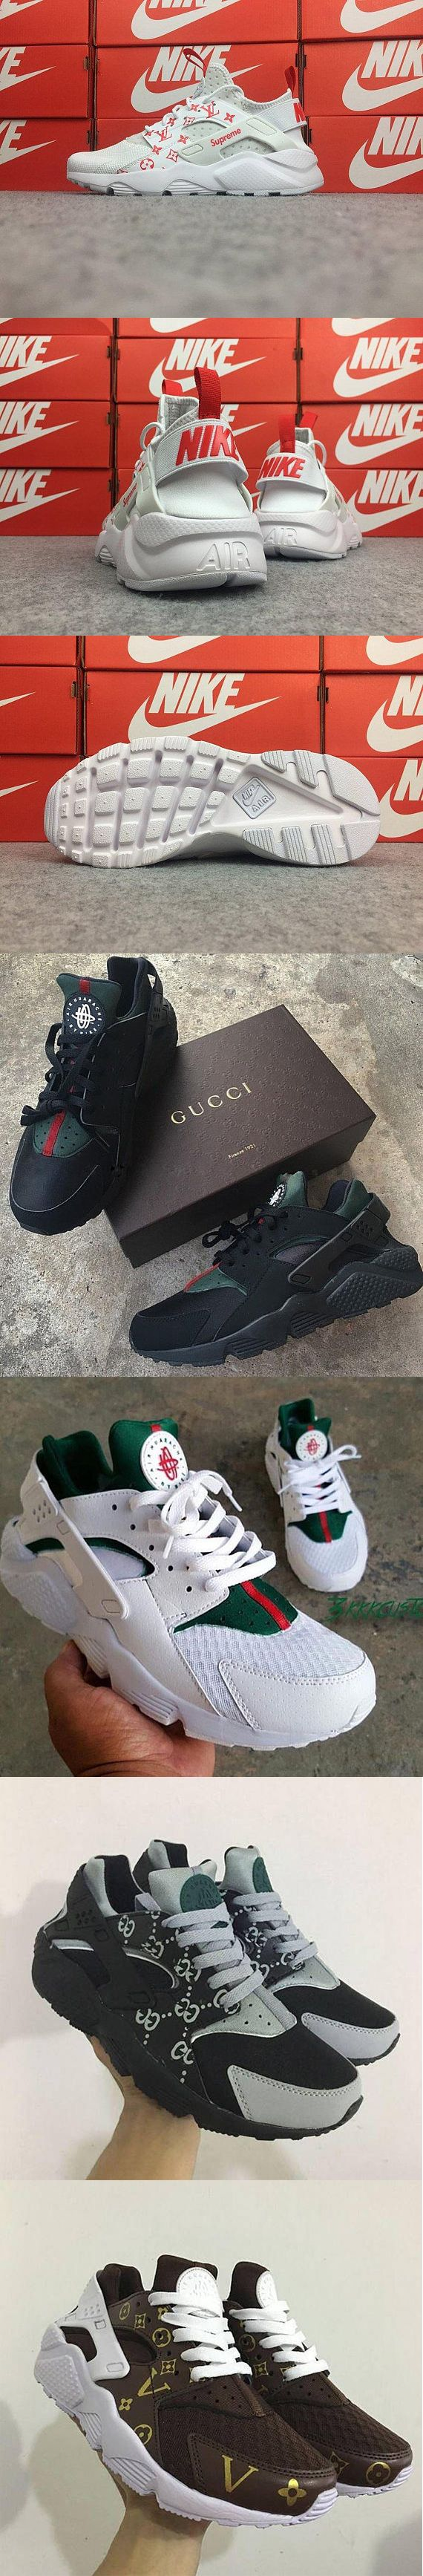 5c04ad8a48d0 Custom Nike Huarache Sneakers Hand Painted Embroidered Shoes Gucci Louis  Vuitton Supreme Bape Champion